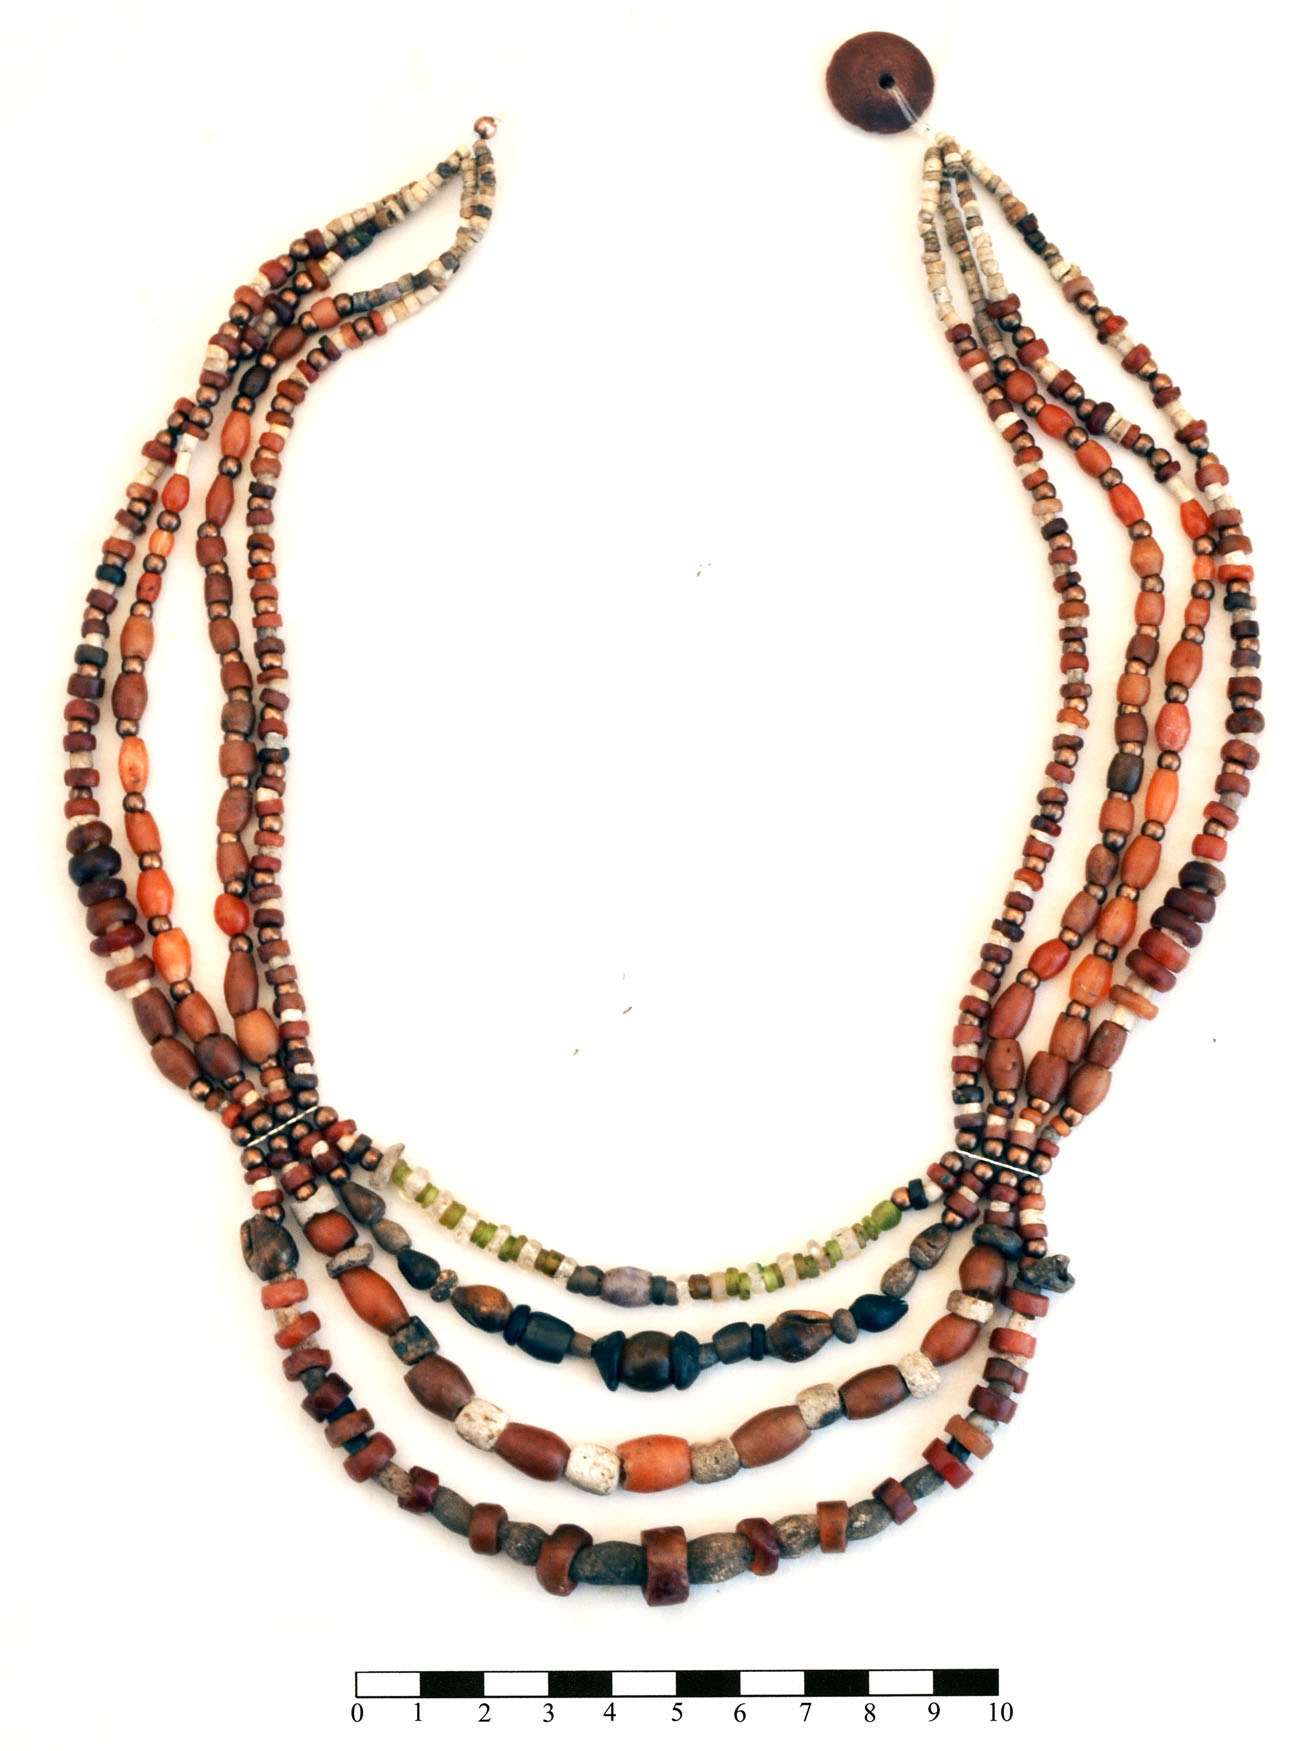 Fig. 10. The restored necklace from the so-called Palace of the Copper Axes at Khirbat al-Batrawy, with beads made of amethyst, carnelian, olivine, rock crystal, quartz, bone, frit, seashell, and copper (courtesy Khirbat al-Batrawy Excavations).